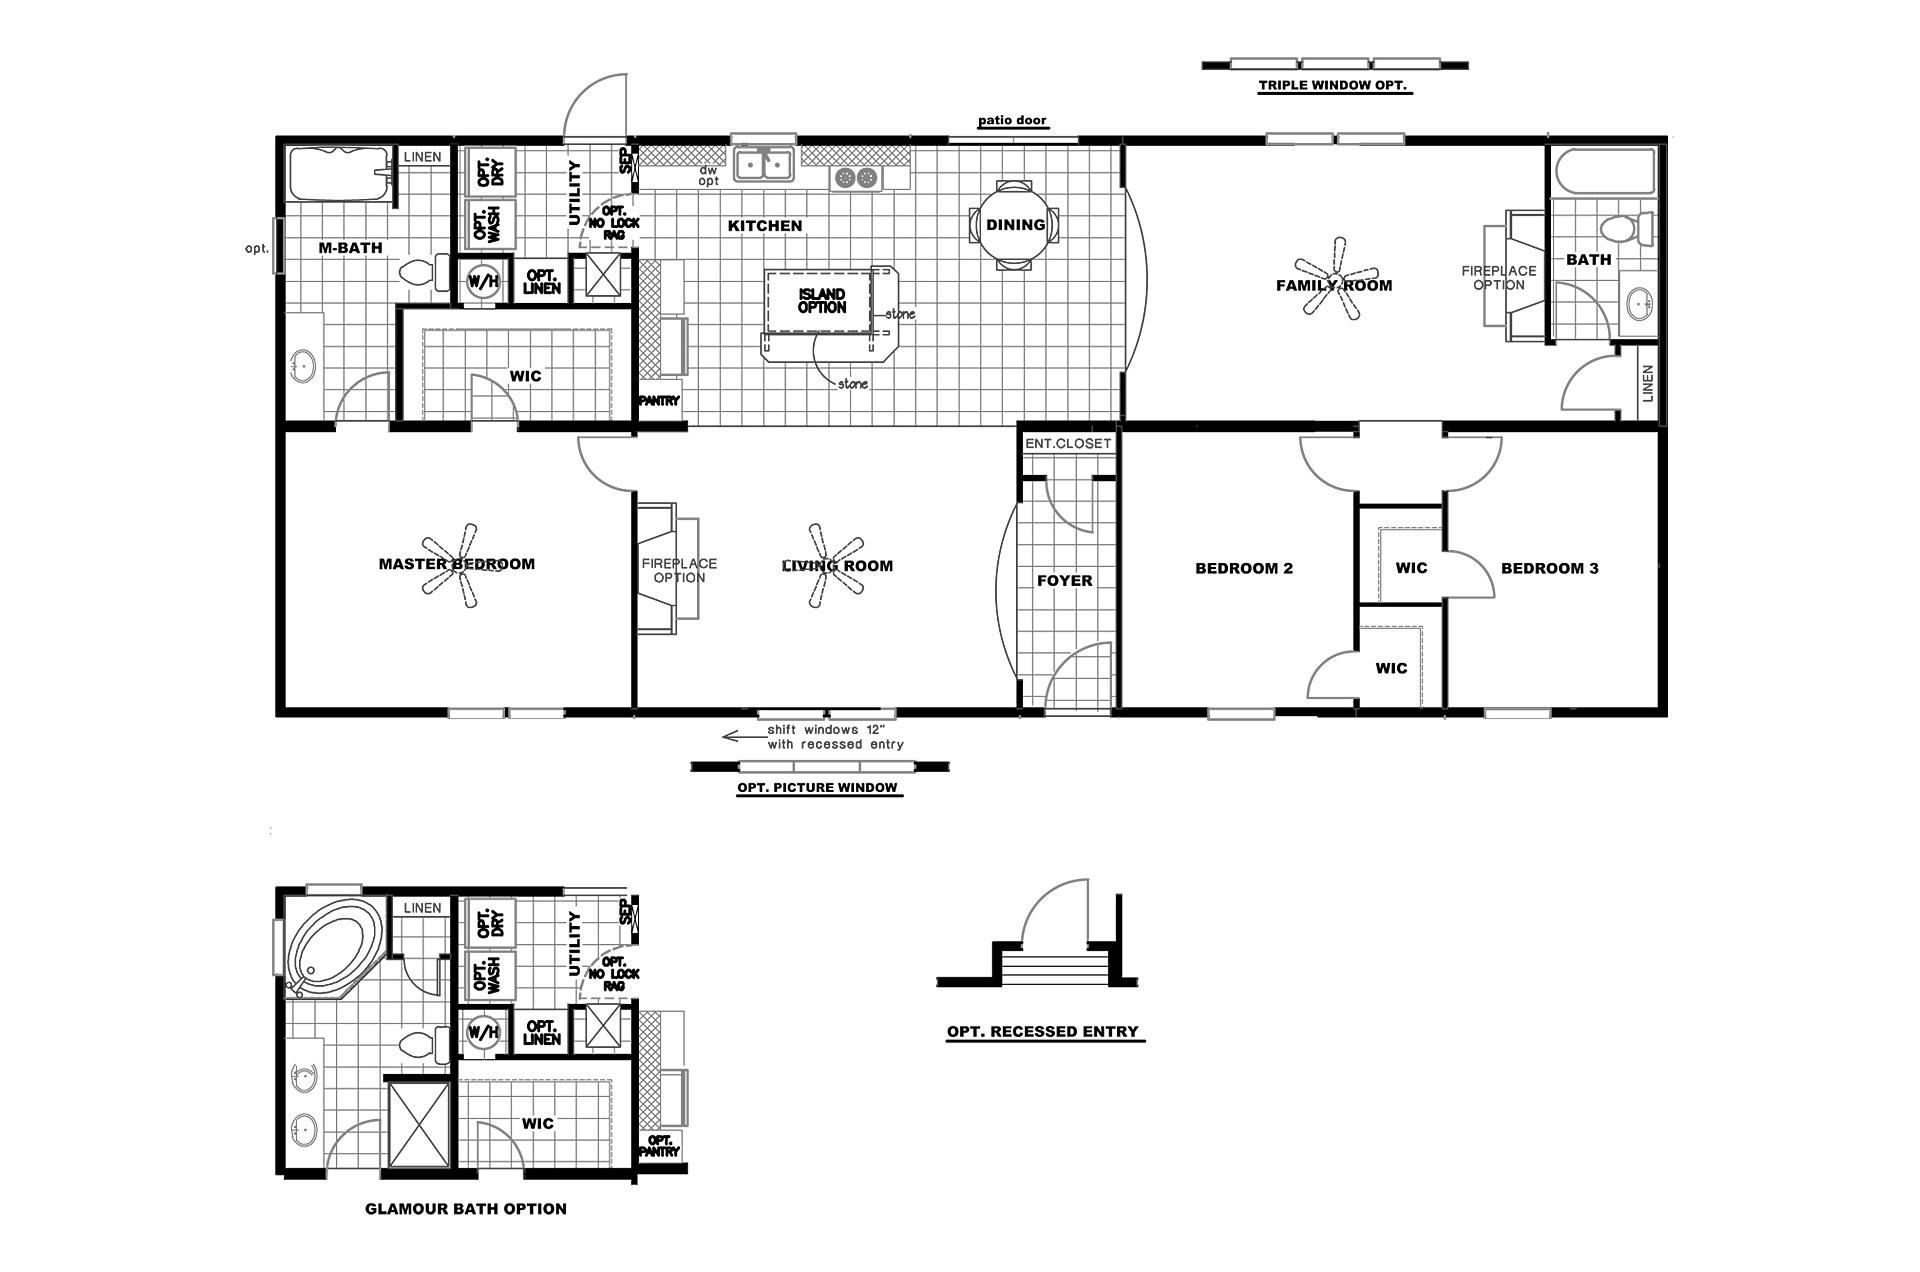 Fp 05 Tx LaBelle VR41764D as well Hot Items together with Palm Harbor Mobile Homes Floor Plans Luxury Important Information About Palm Harbor Of Mesquite Texas Featured besides 2008 Clayton Mobile Home Floor Plans additionally Oak Creek. on single wide mobile home floor plans texas